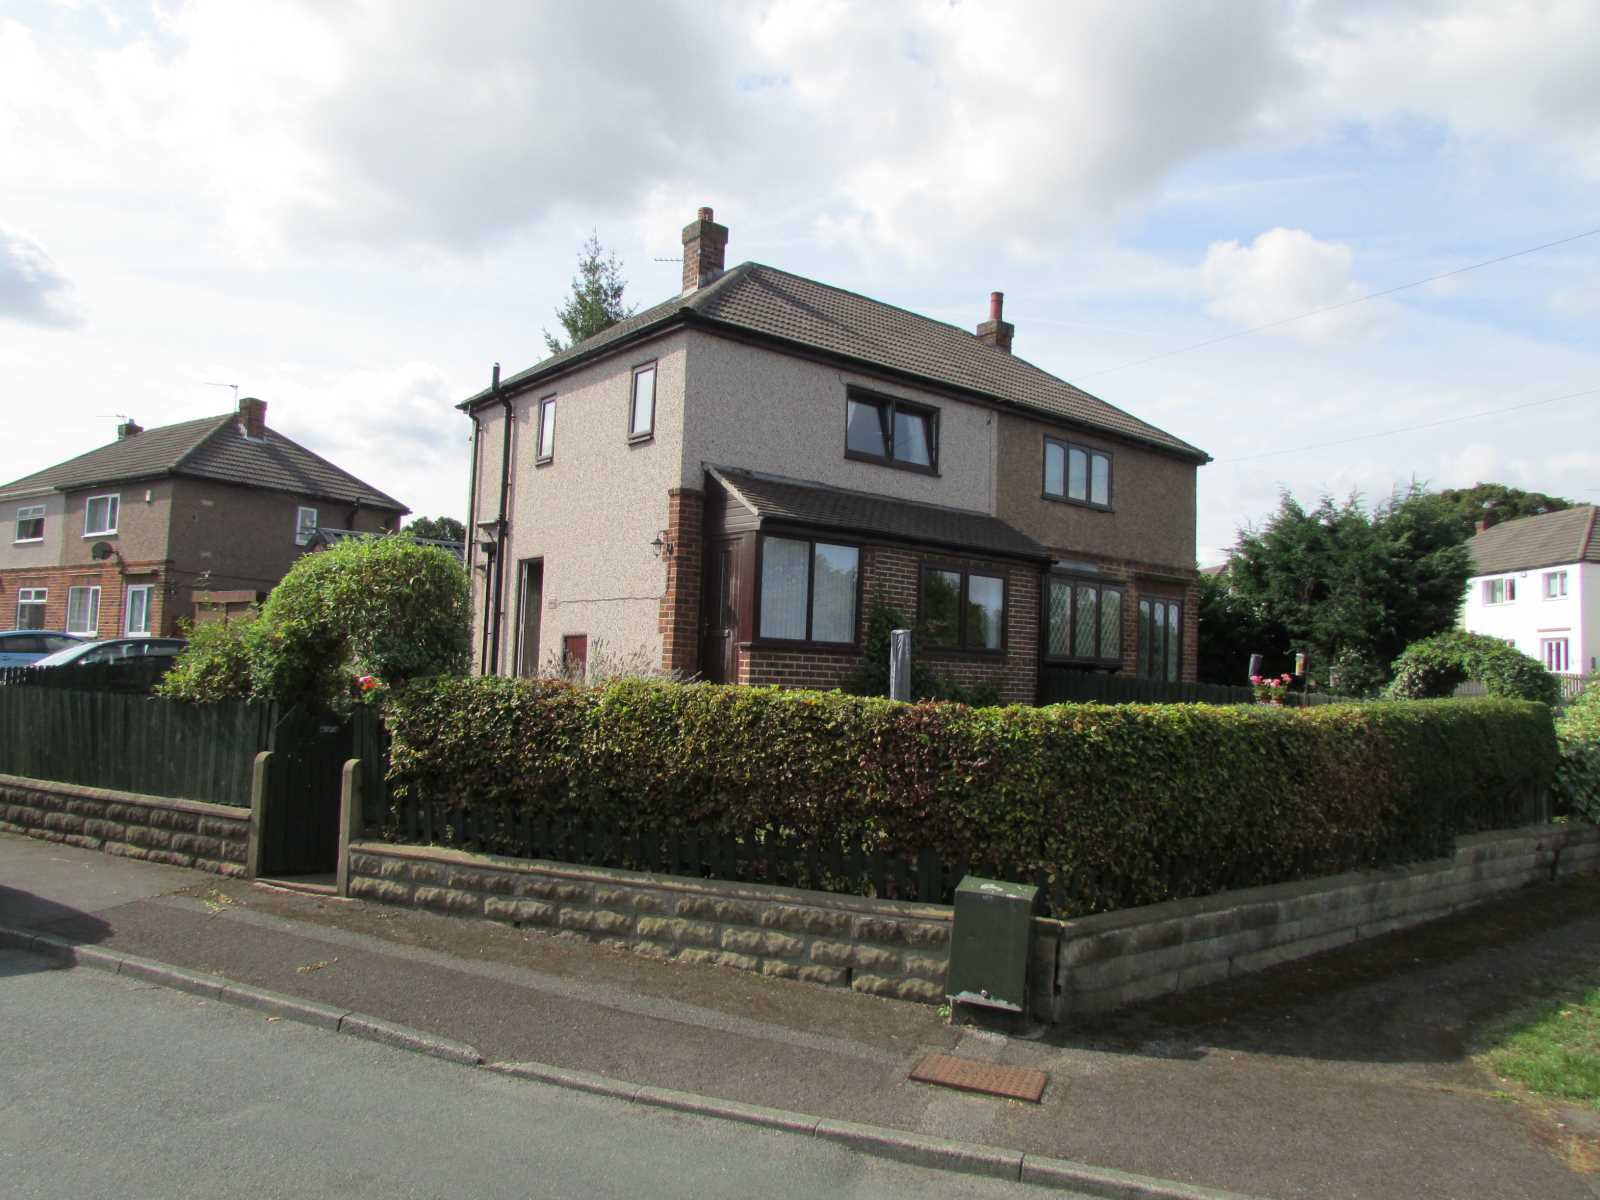 33 Woodedge Avenue, Huddersfield, HD5 9UX, UK